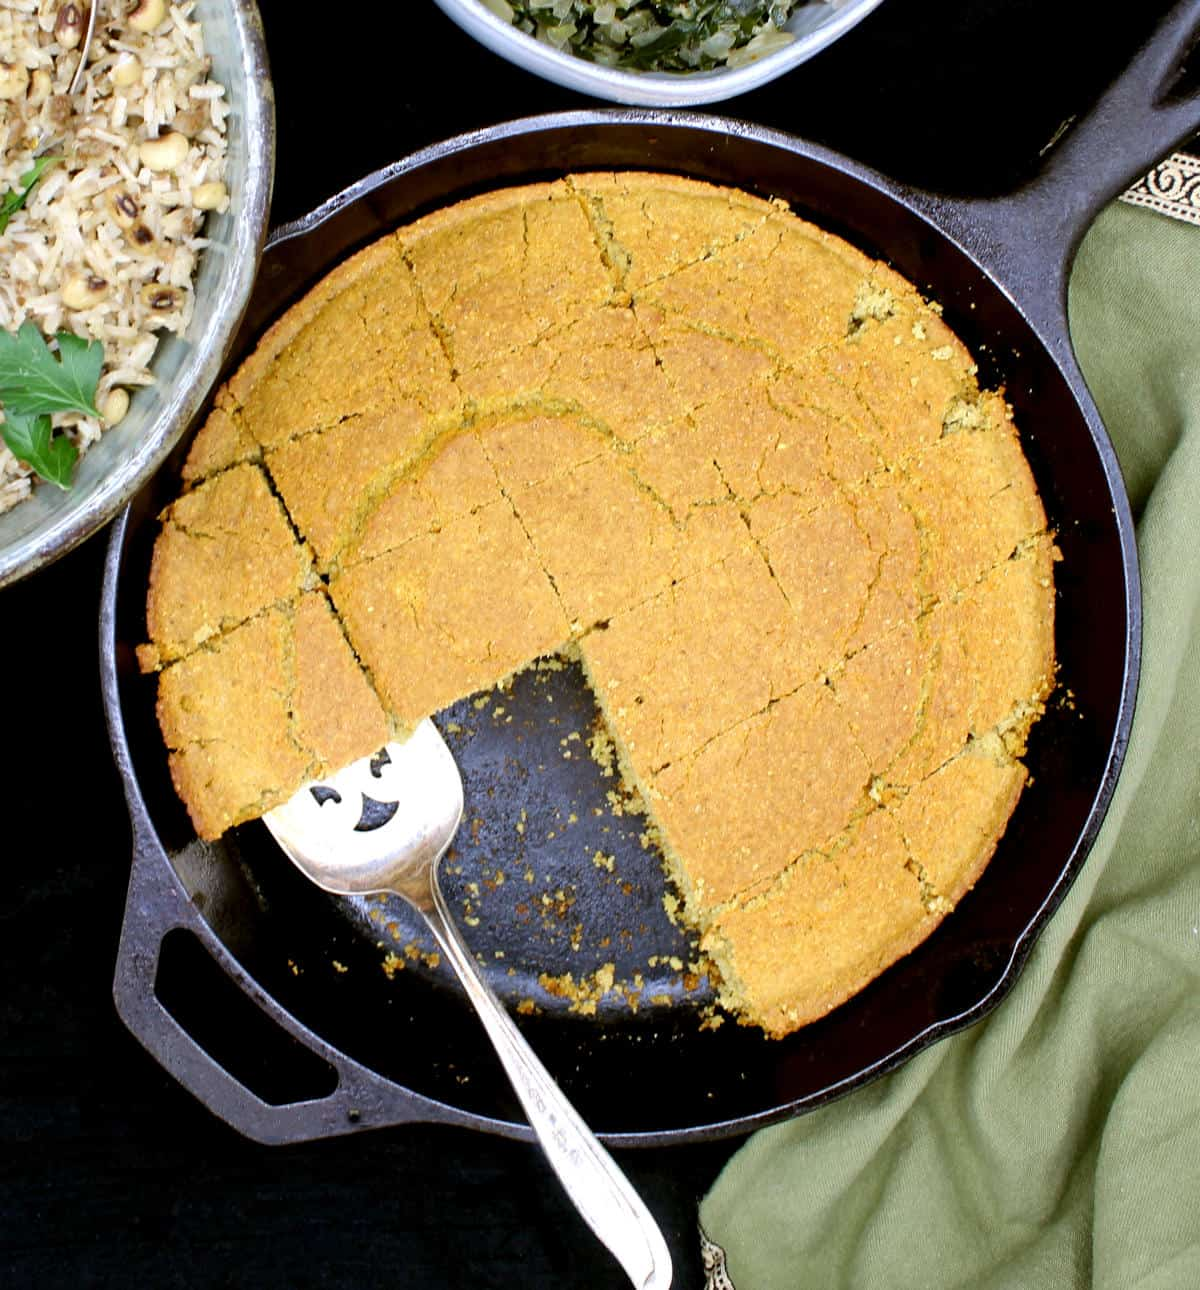 Vegan cornbread made southern style in a cast iron skillet and served with collard greens and Hoppin' John.